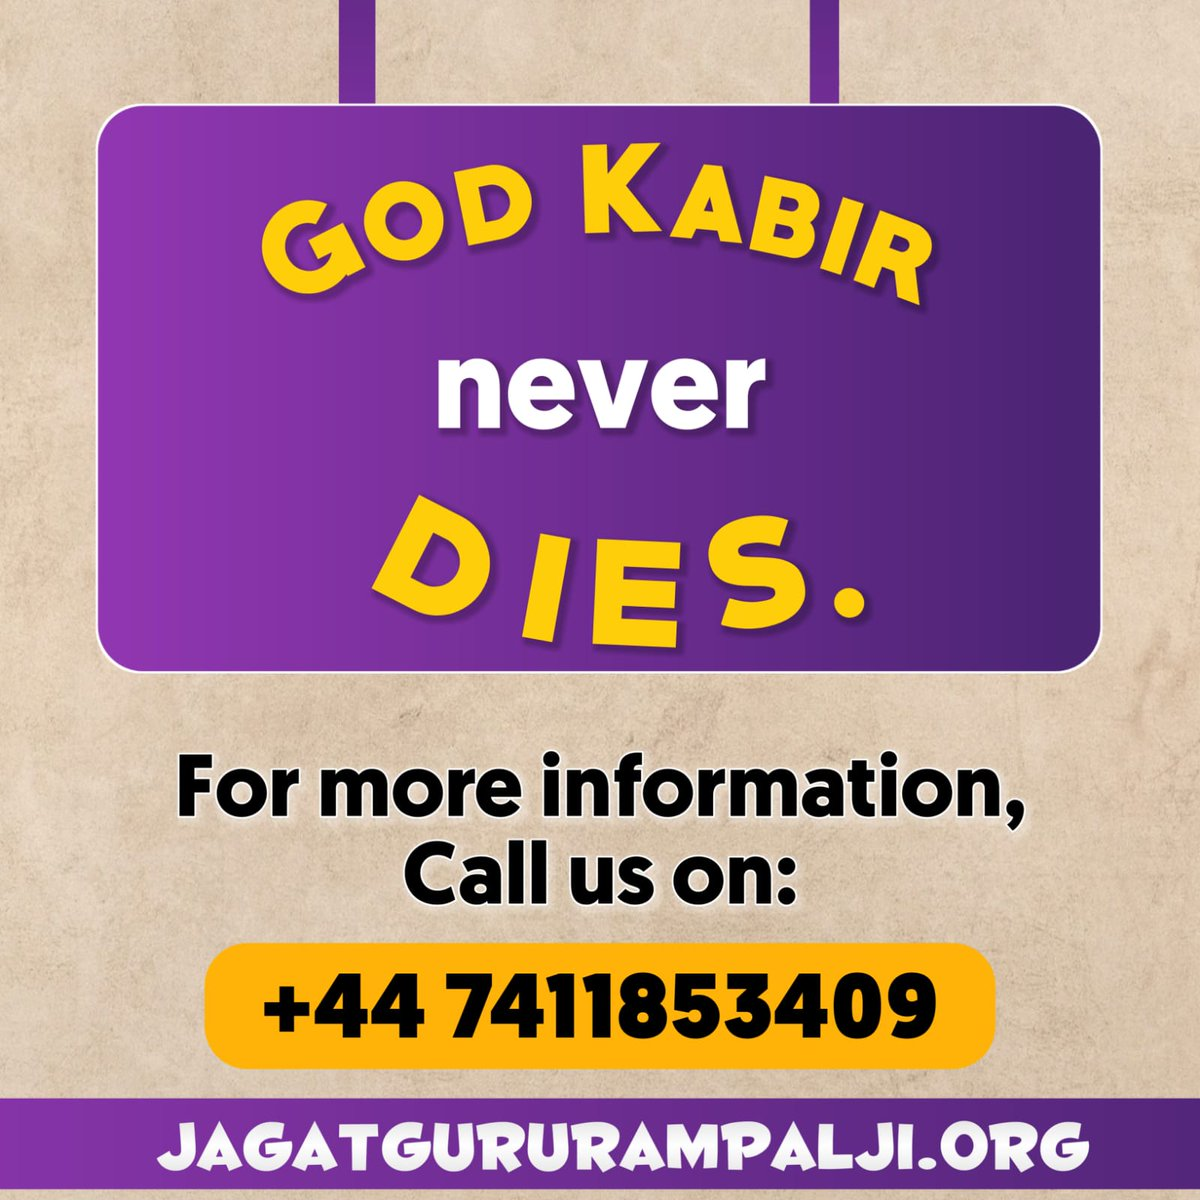 #TuesdayThoughts  Jesus took birth from a mother's womb Whereas God does not take birth from a mother. <br>http://pic.twitter.com/CuhfslYxXd